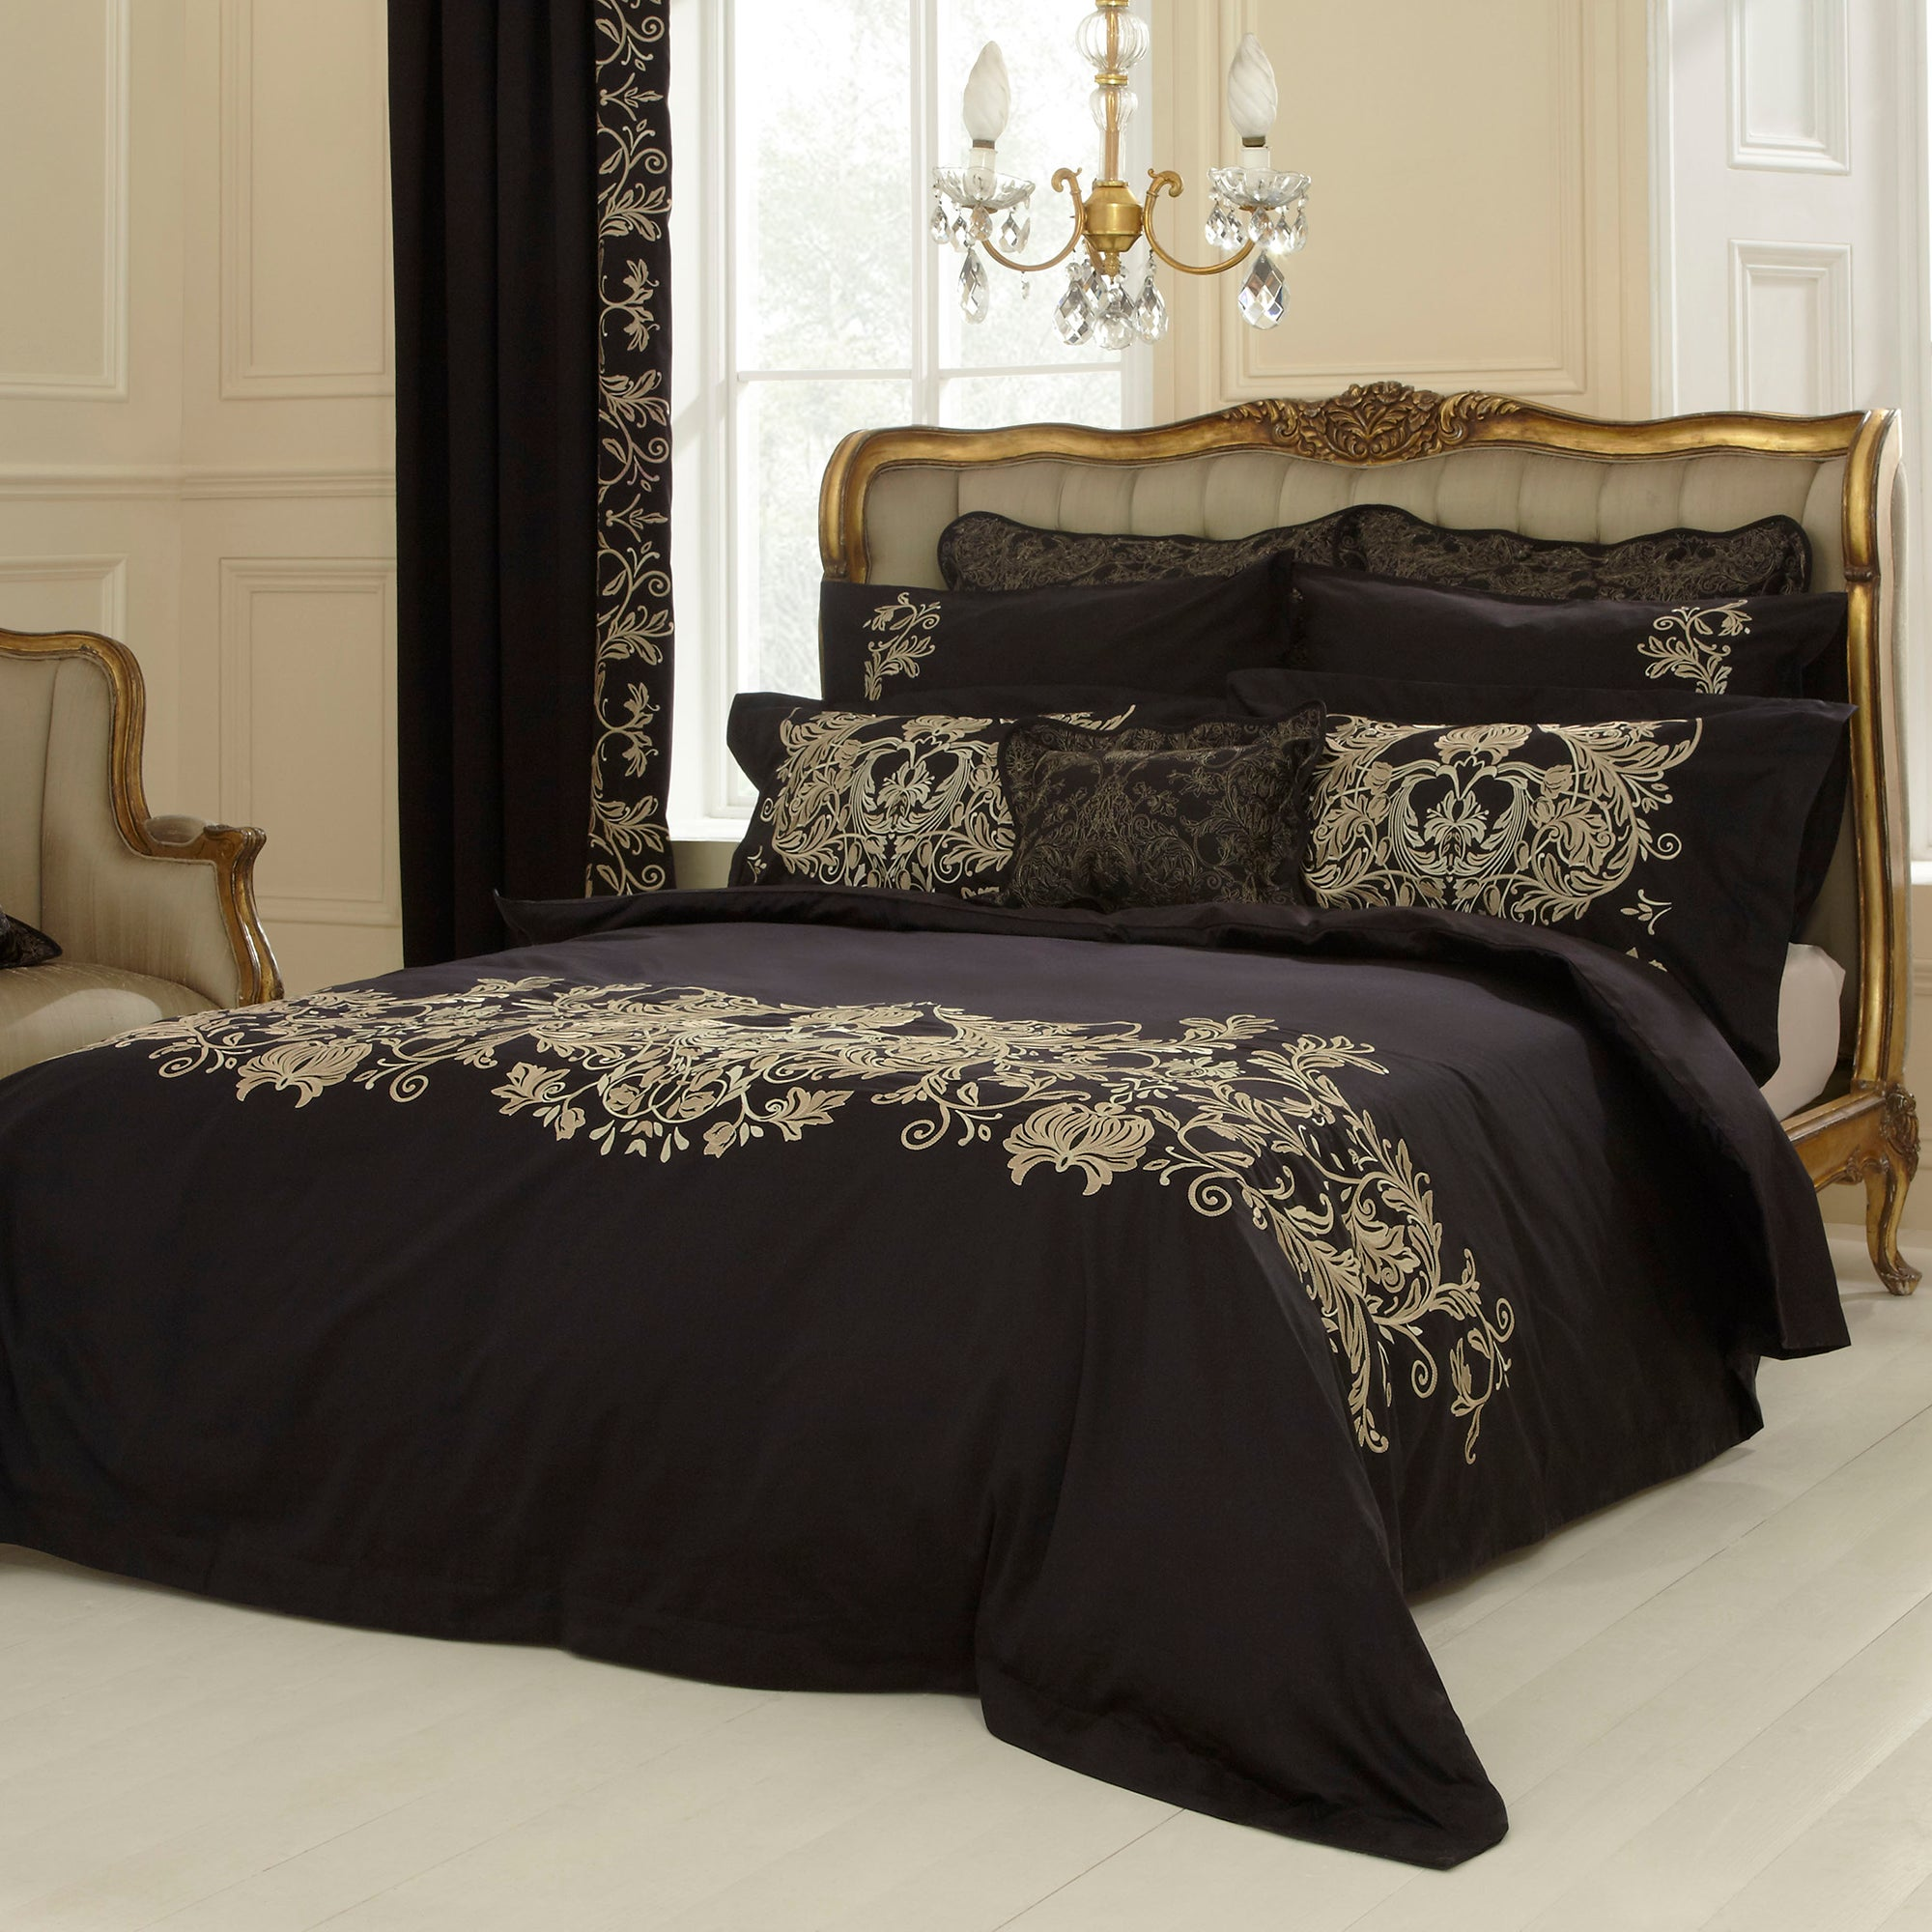 Dorma Black Mayfair Collection Duvet Cover